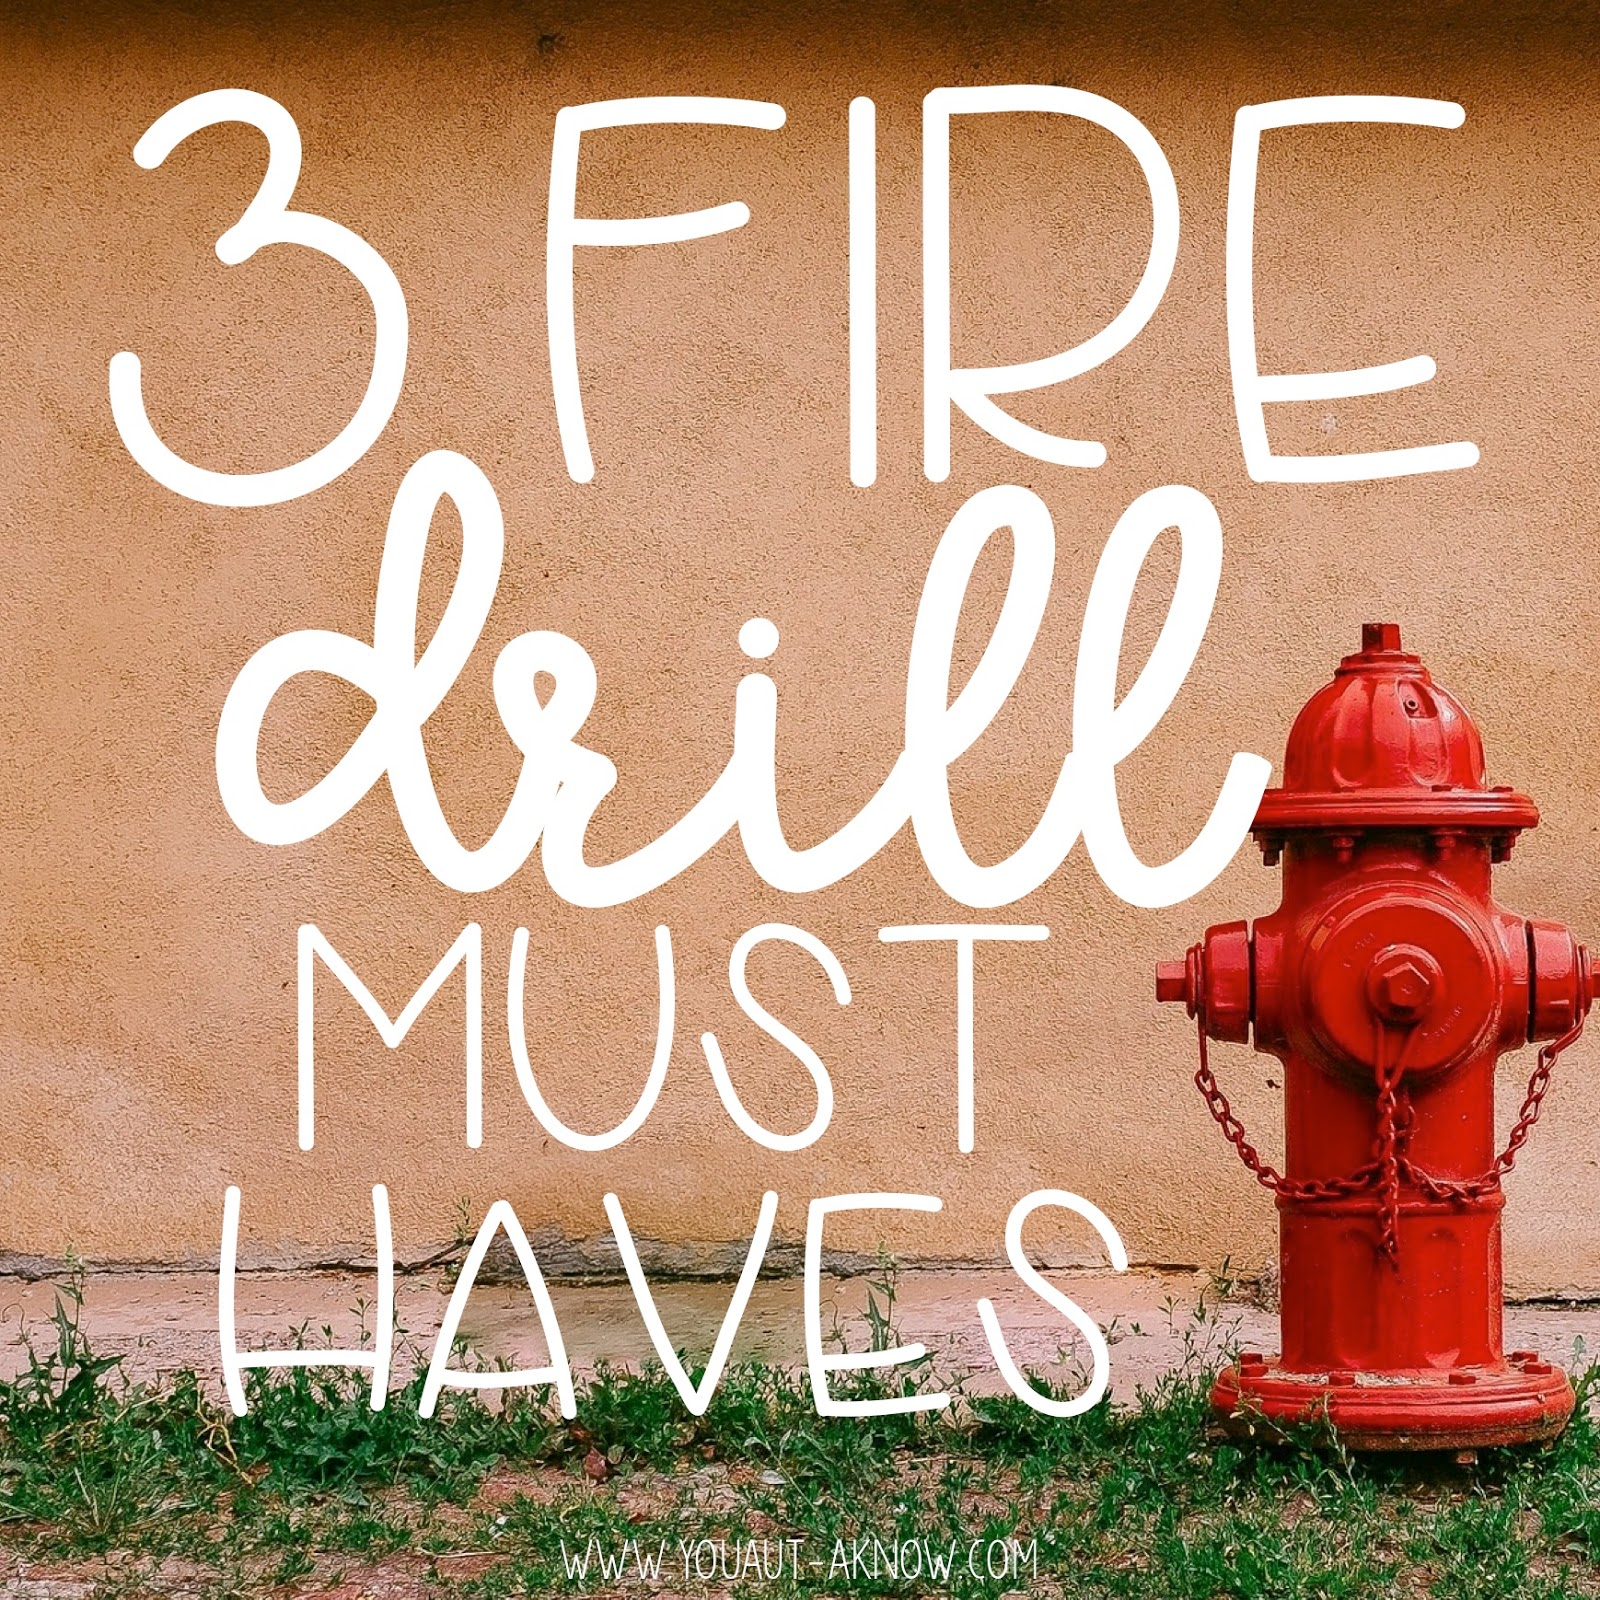 Fire Drill Must Haves  You Auta Know